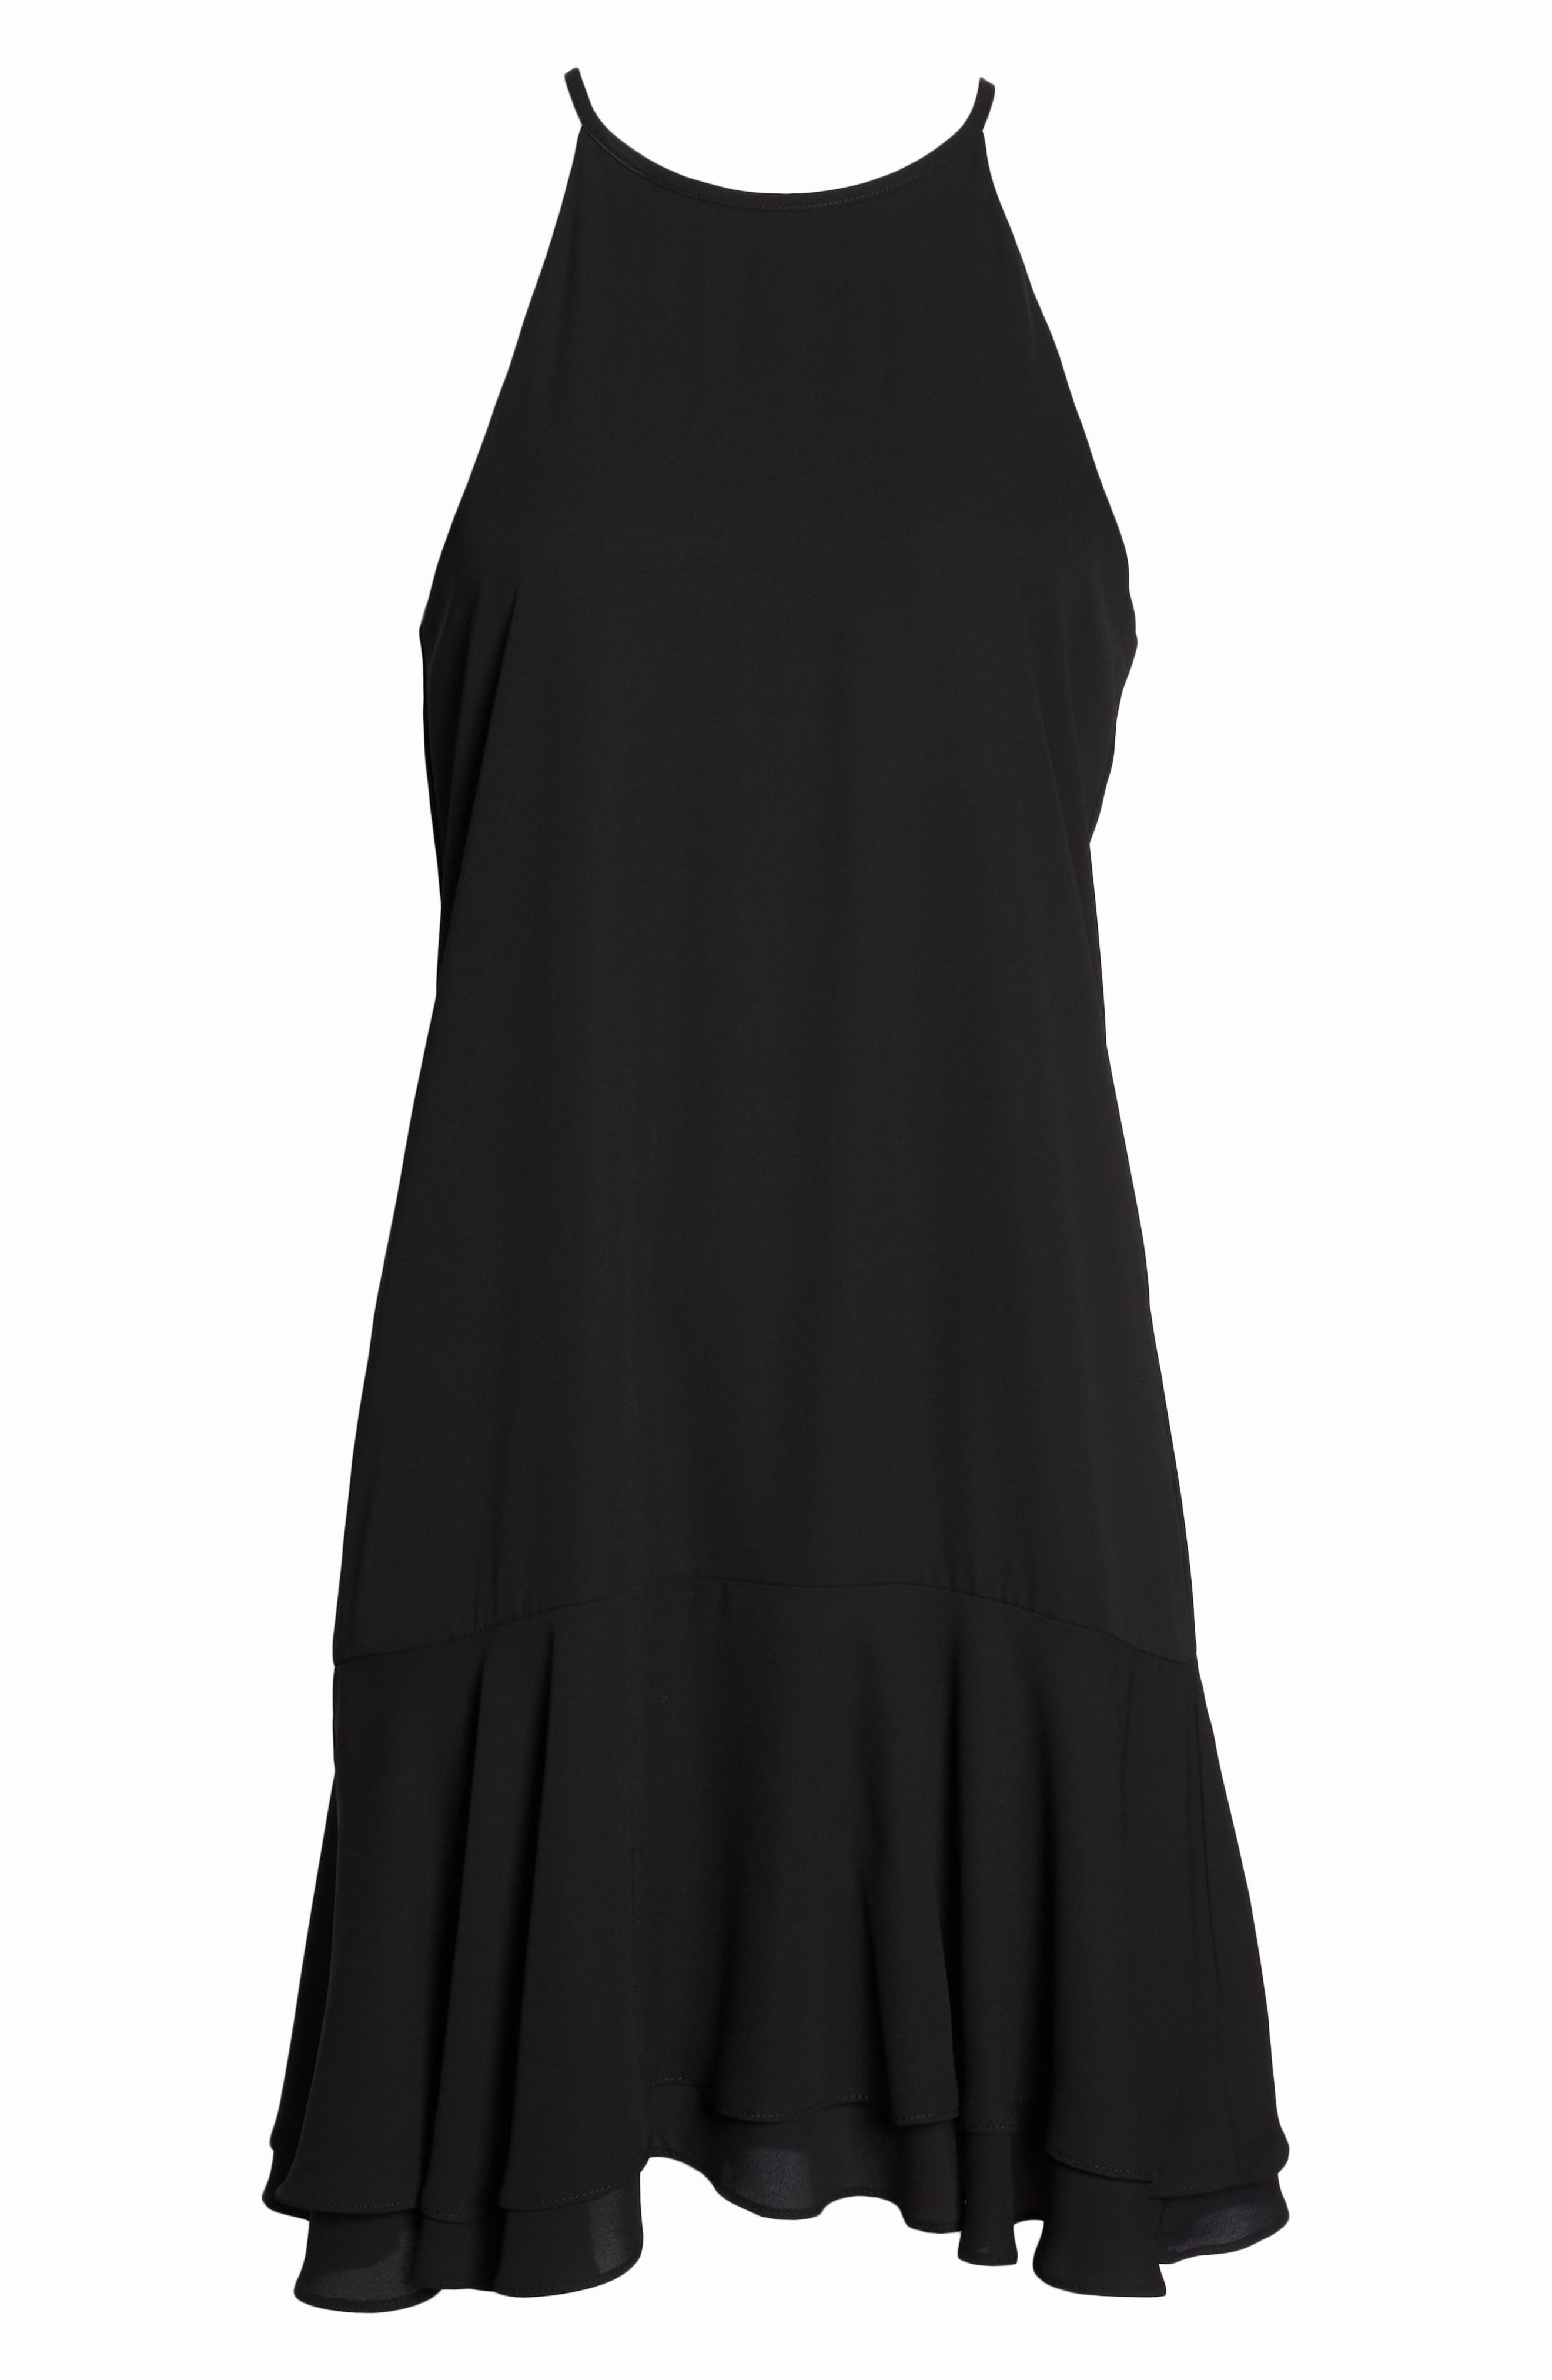 Tiered Shift Dress,                             Alternate thumbnail 7, color,                             001